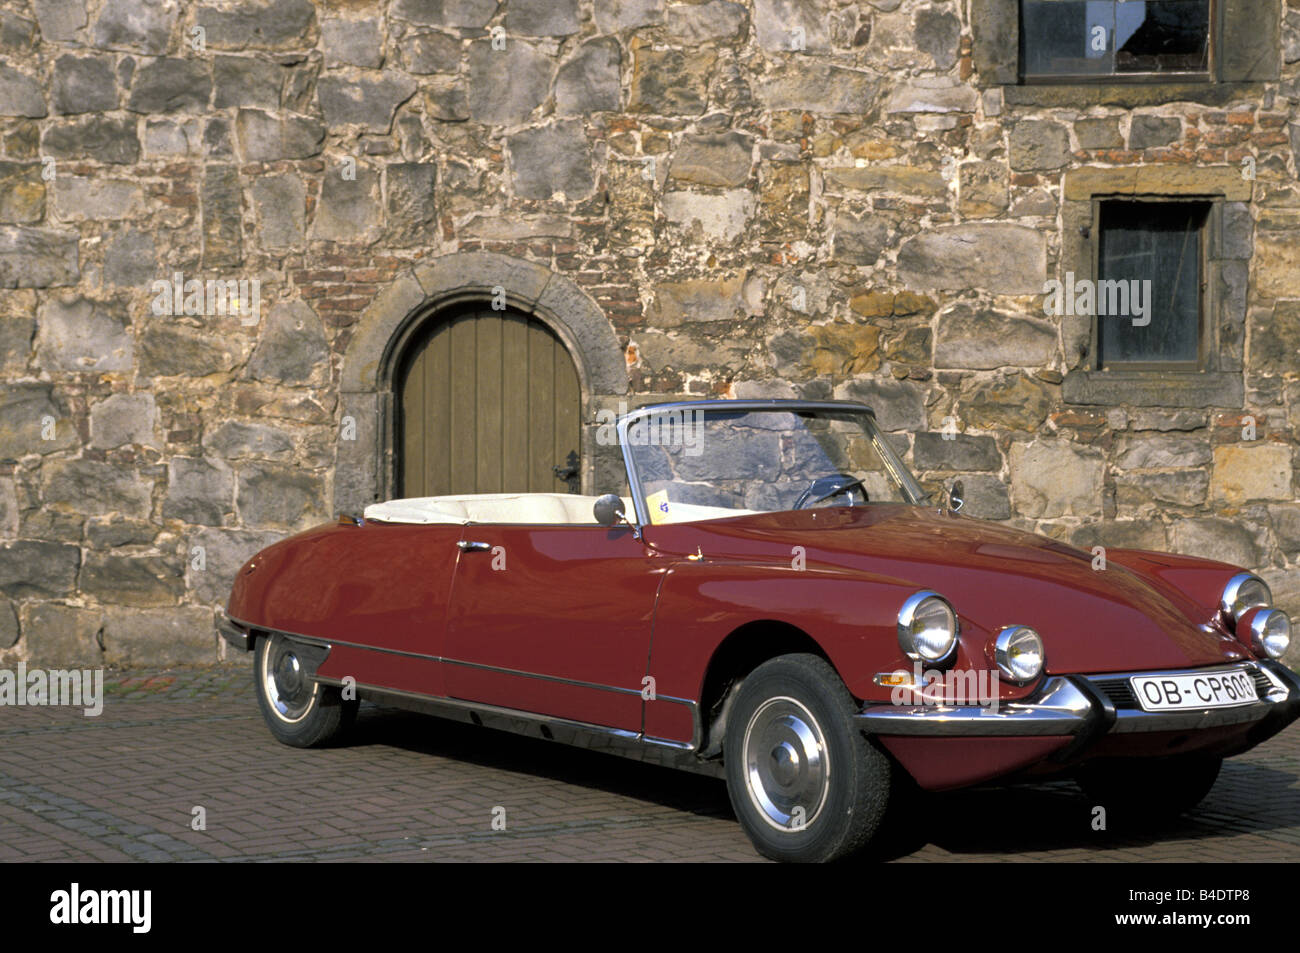 car citroen ds convertible model year 1961 1965 vintage approx stock photo royalty free. Black Bedroom Furniture Sets. Home Design Ideas